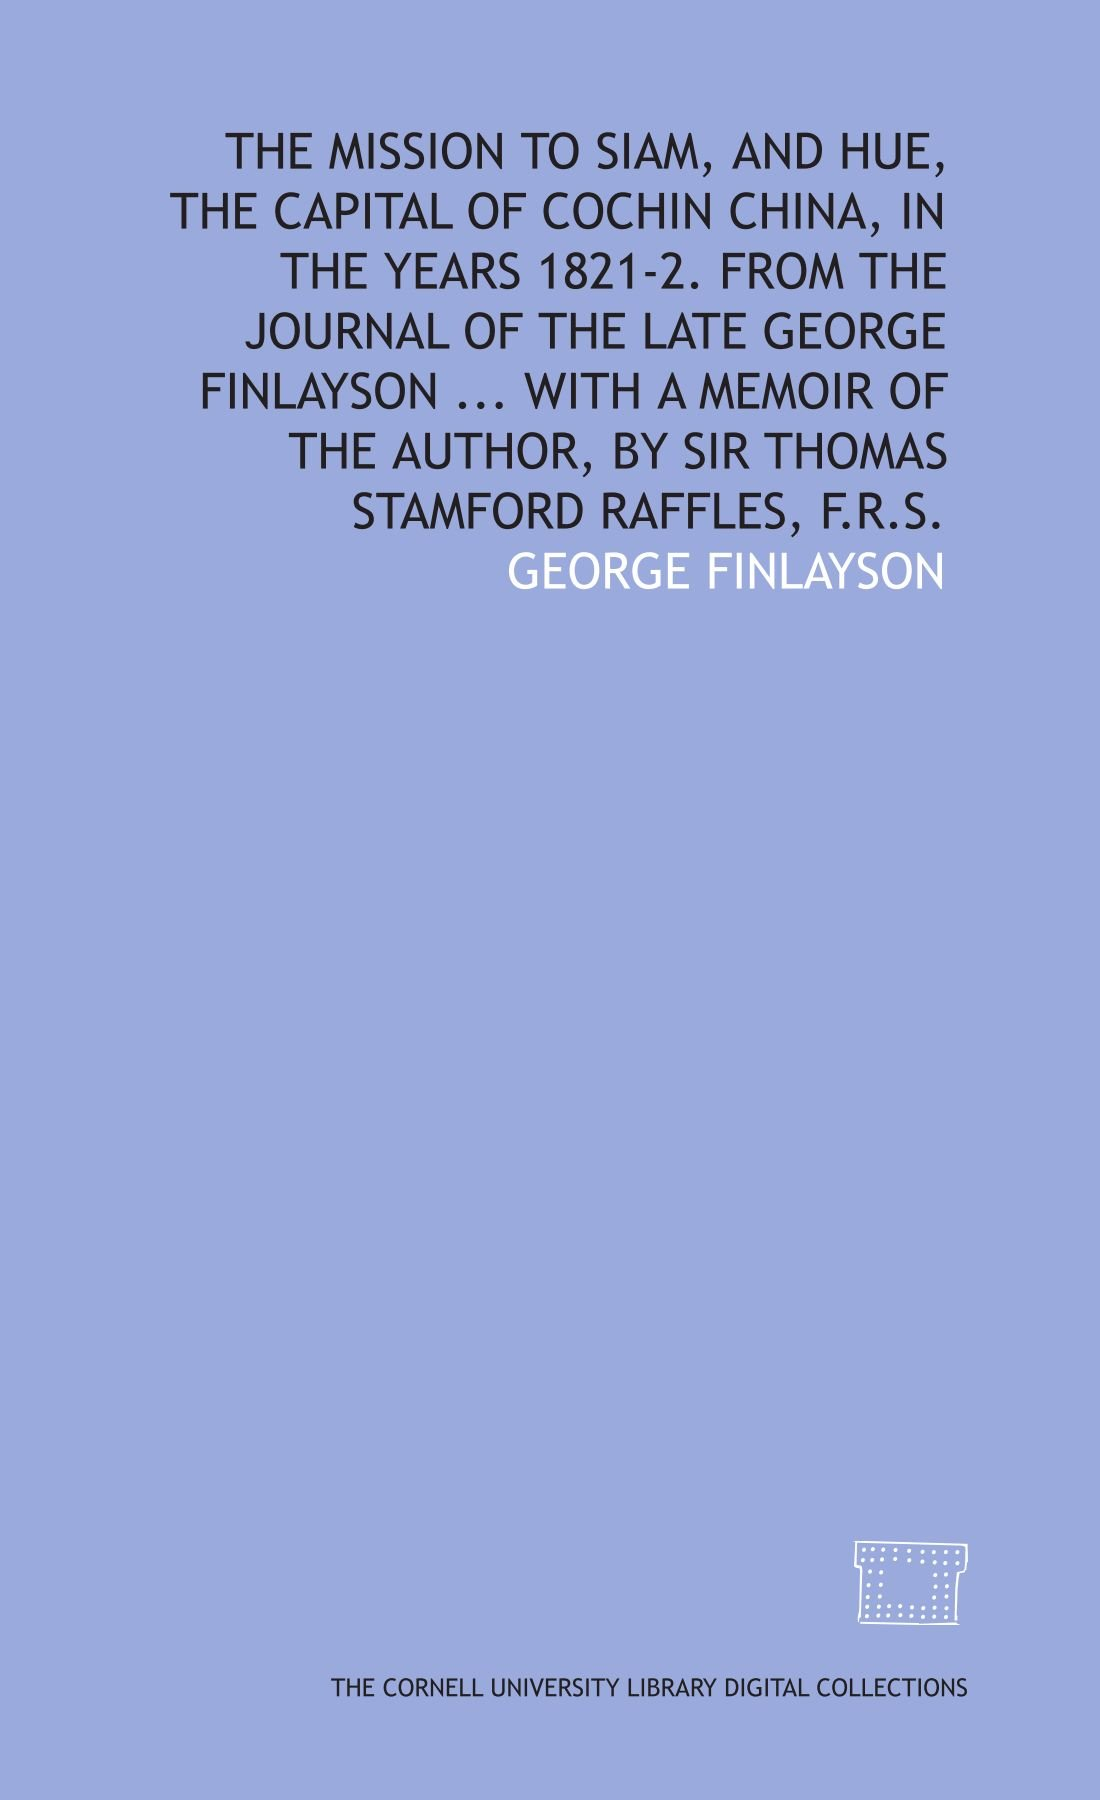 The mission to Siam, and Hue, the capital of Cochin China, in the years 1821-2. From the journal of the late George Finlayson . . . With a memoir of the author, by Sir Thomas Stamford Raffles, F.R.S. ebook